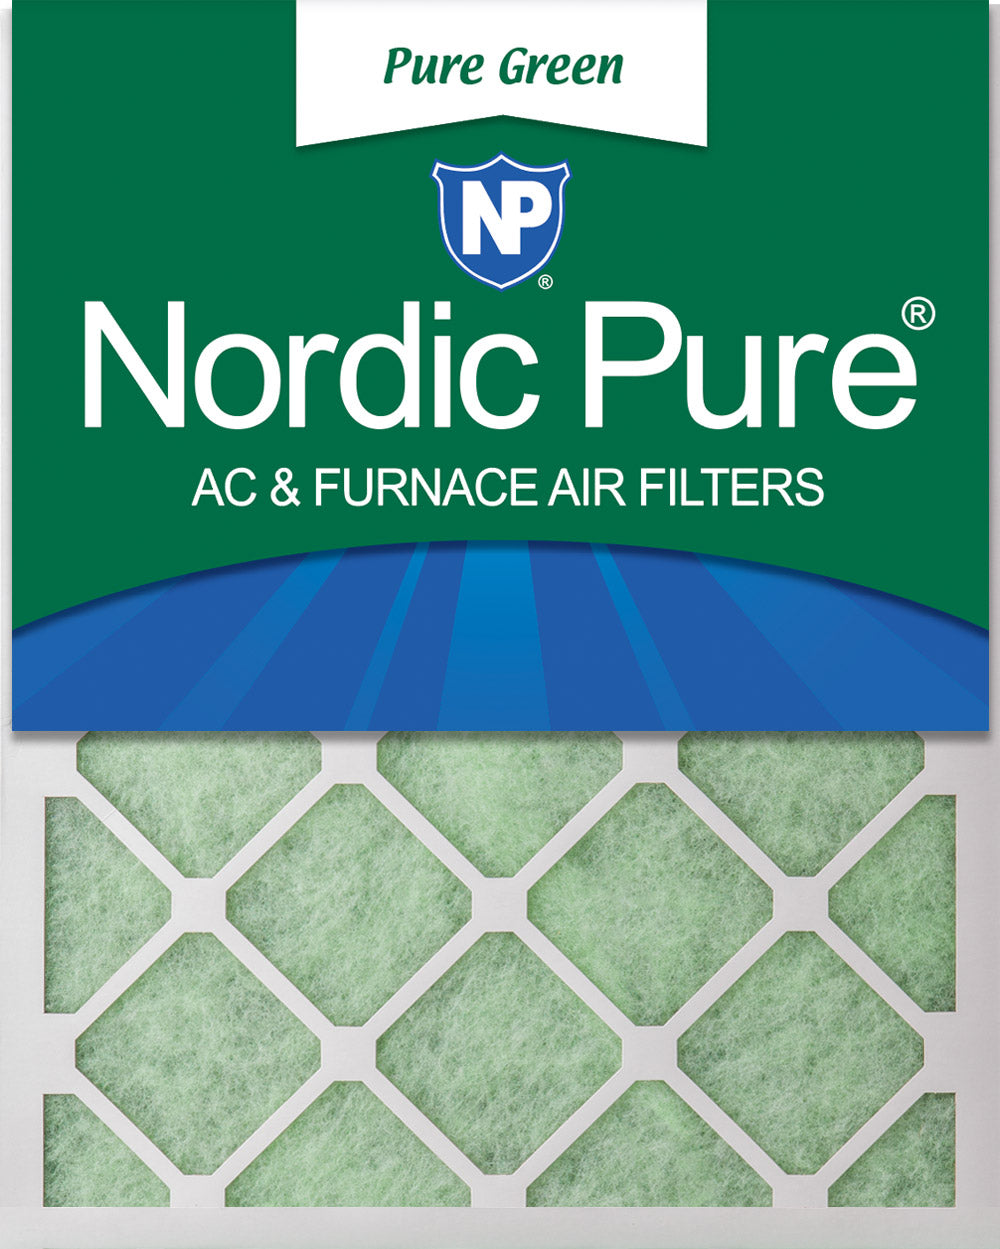 20x25x1 Pure Green Eco-Friendly AC Furnace Air Filters 12 Pack